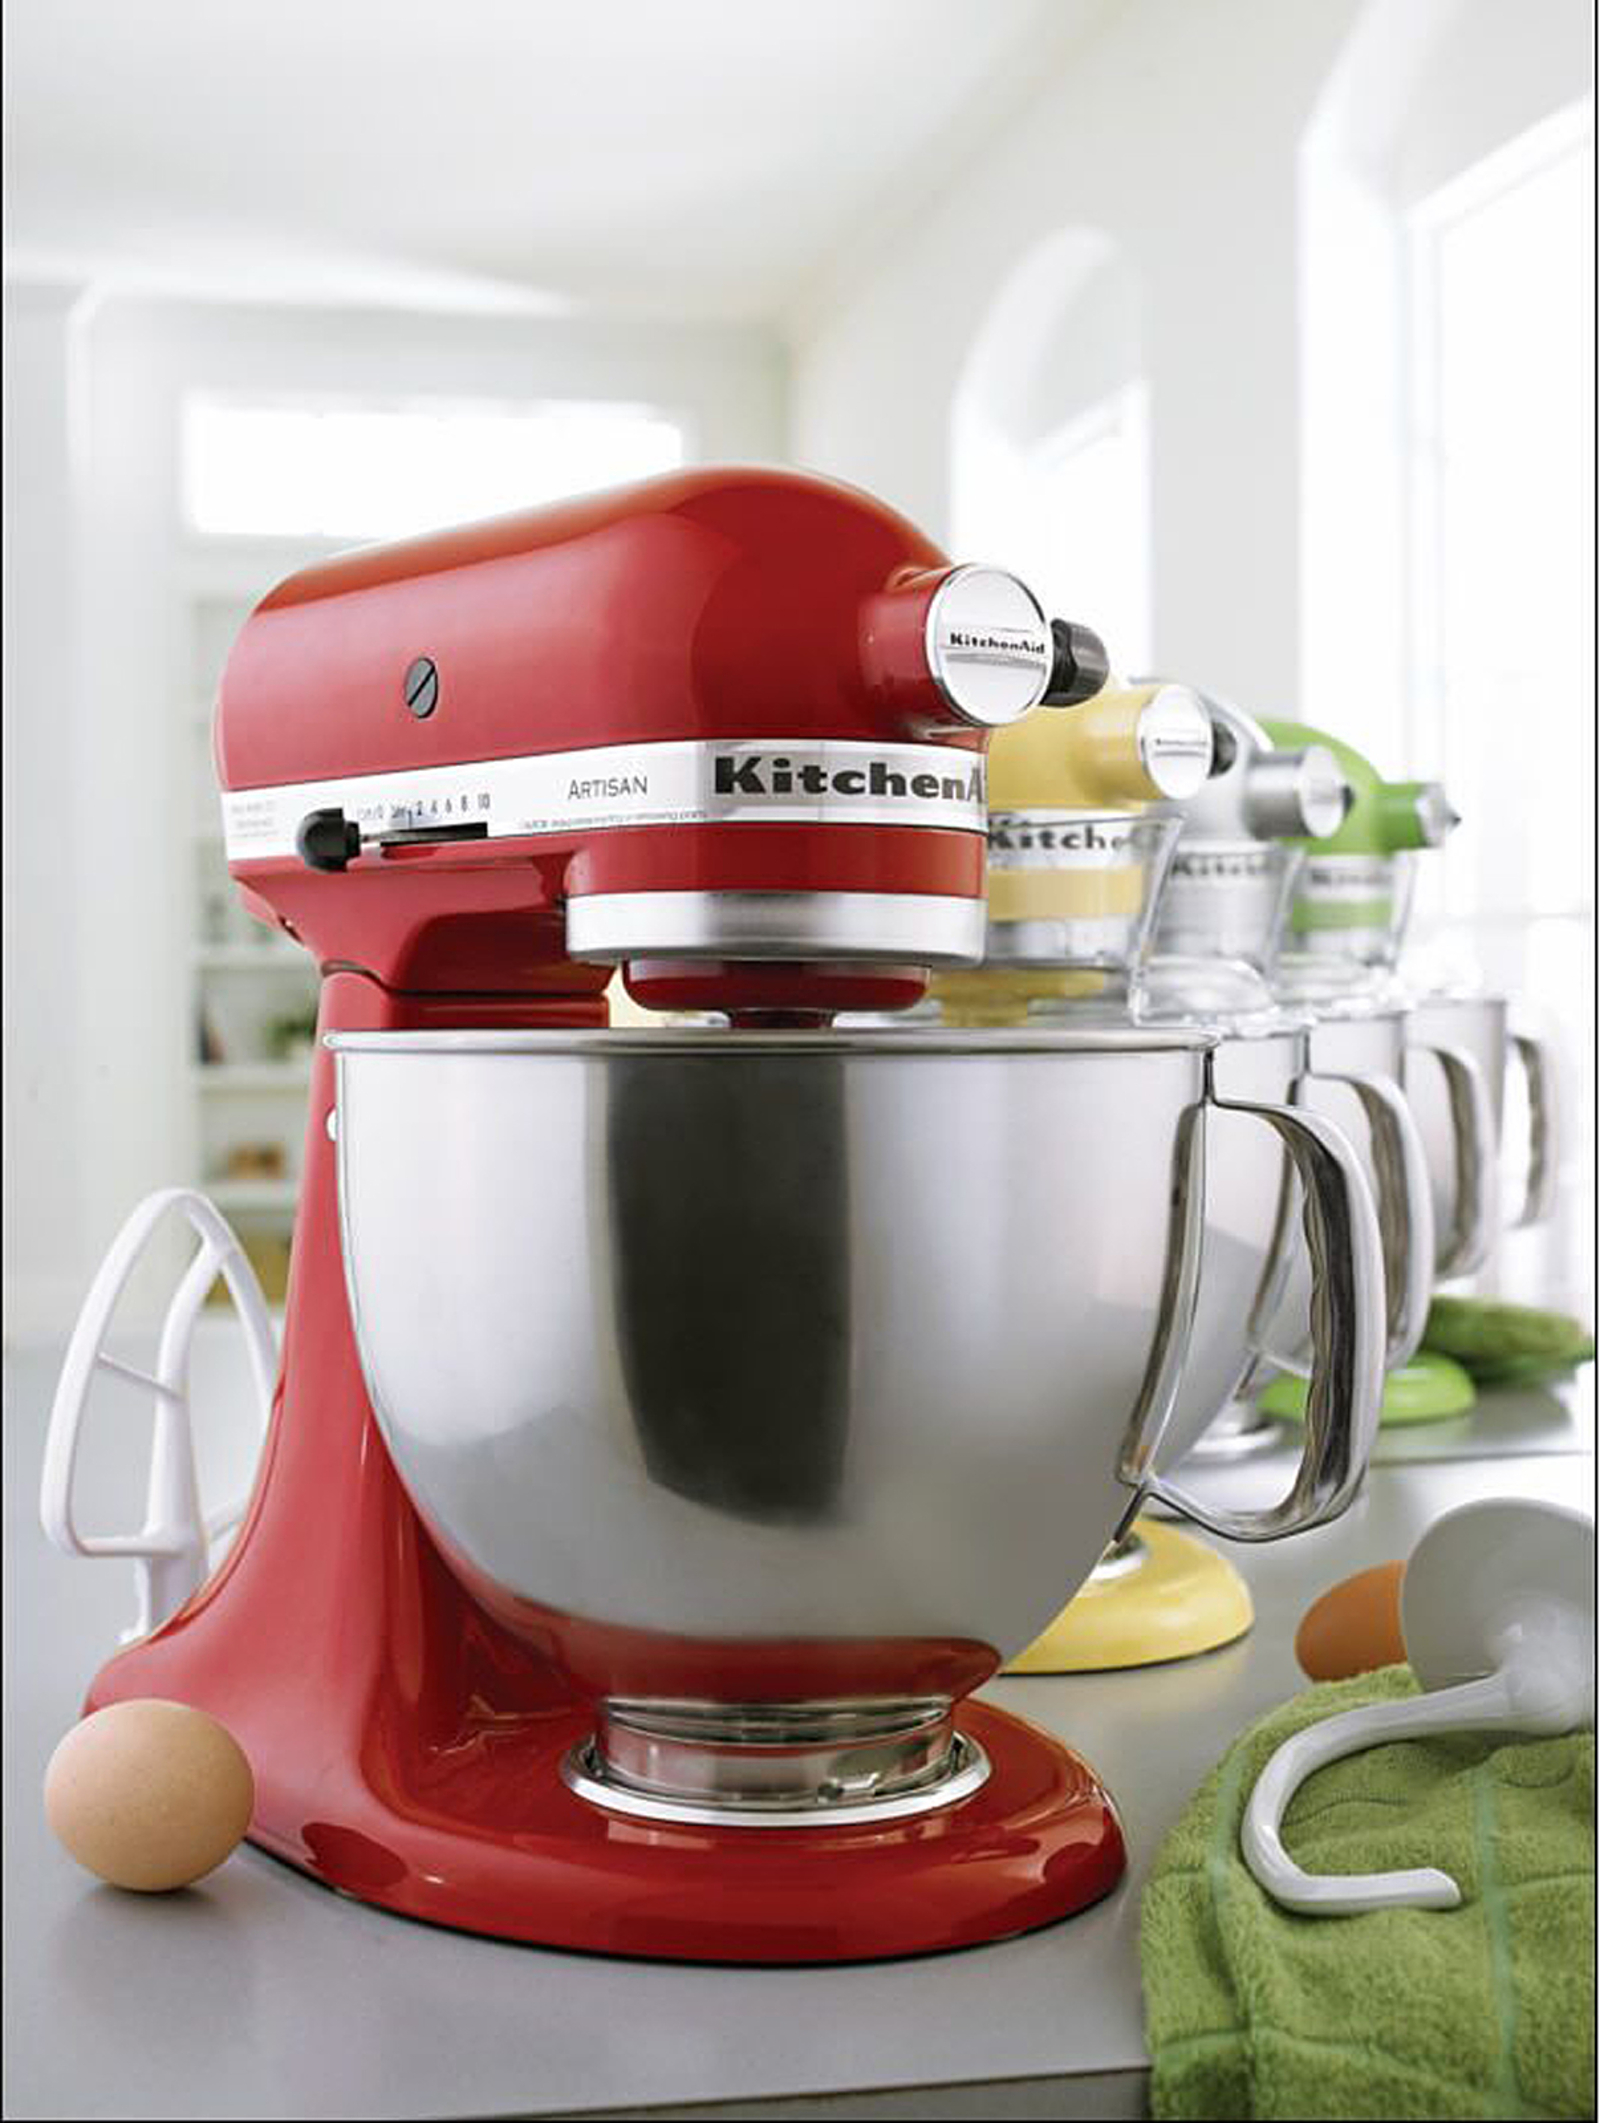 KitchenAid KSM150PSER Artisan® Series Empire Red 5 Quart Stand Mixer